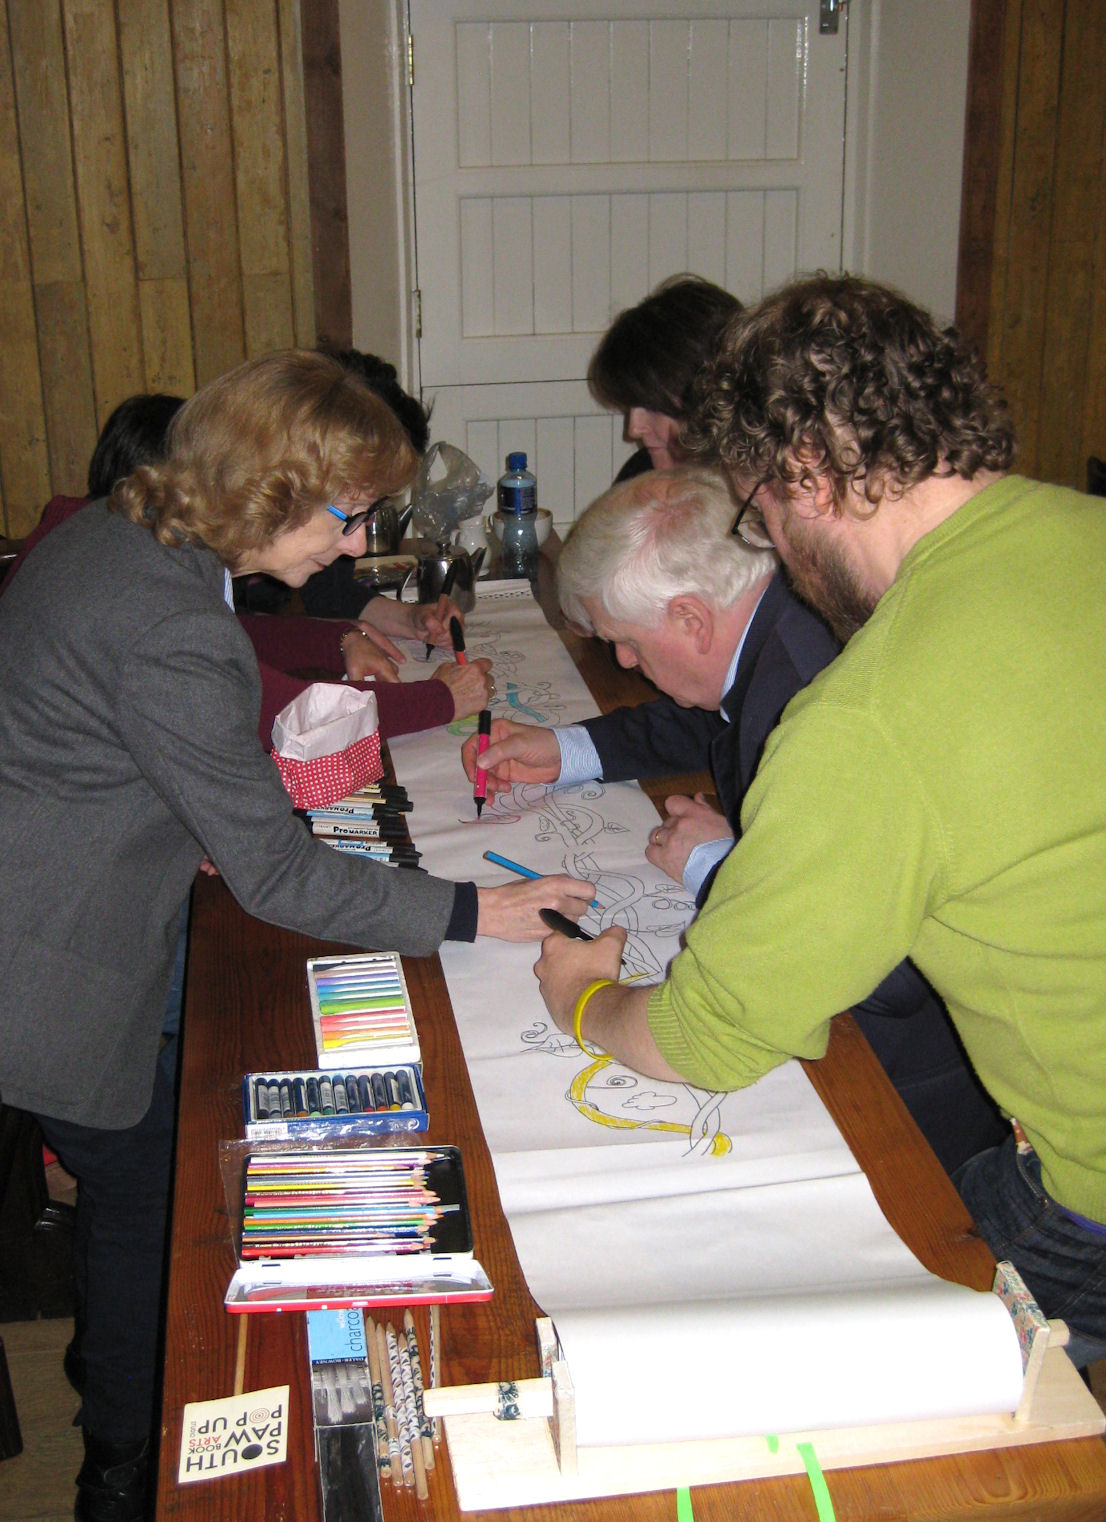 SCBWI Ireland South Social Event in October 2015 featured everyone getting involved in Martin Fahy's Beanstalk Doodle project!